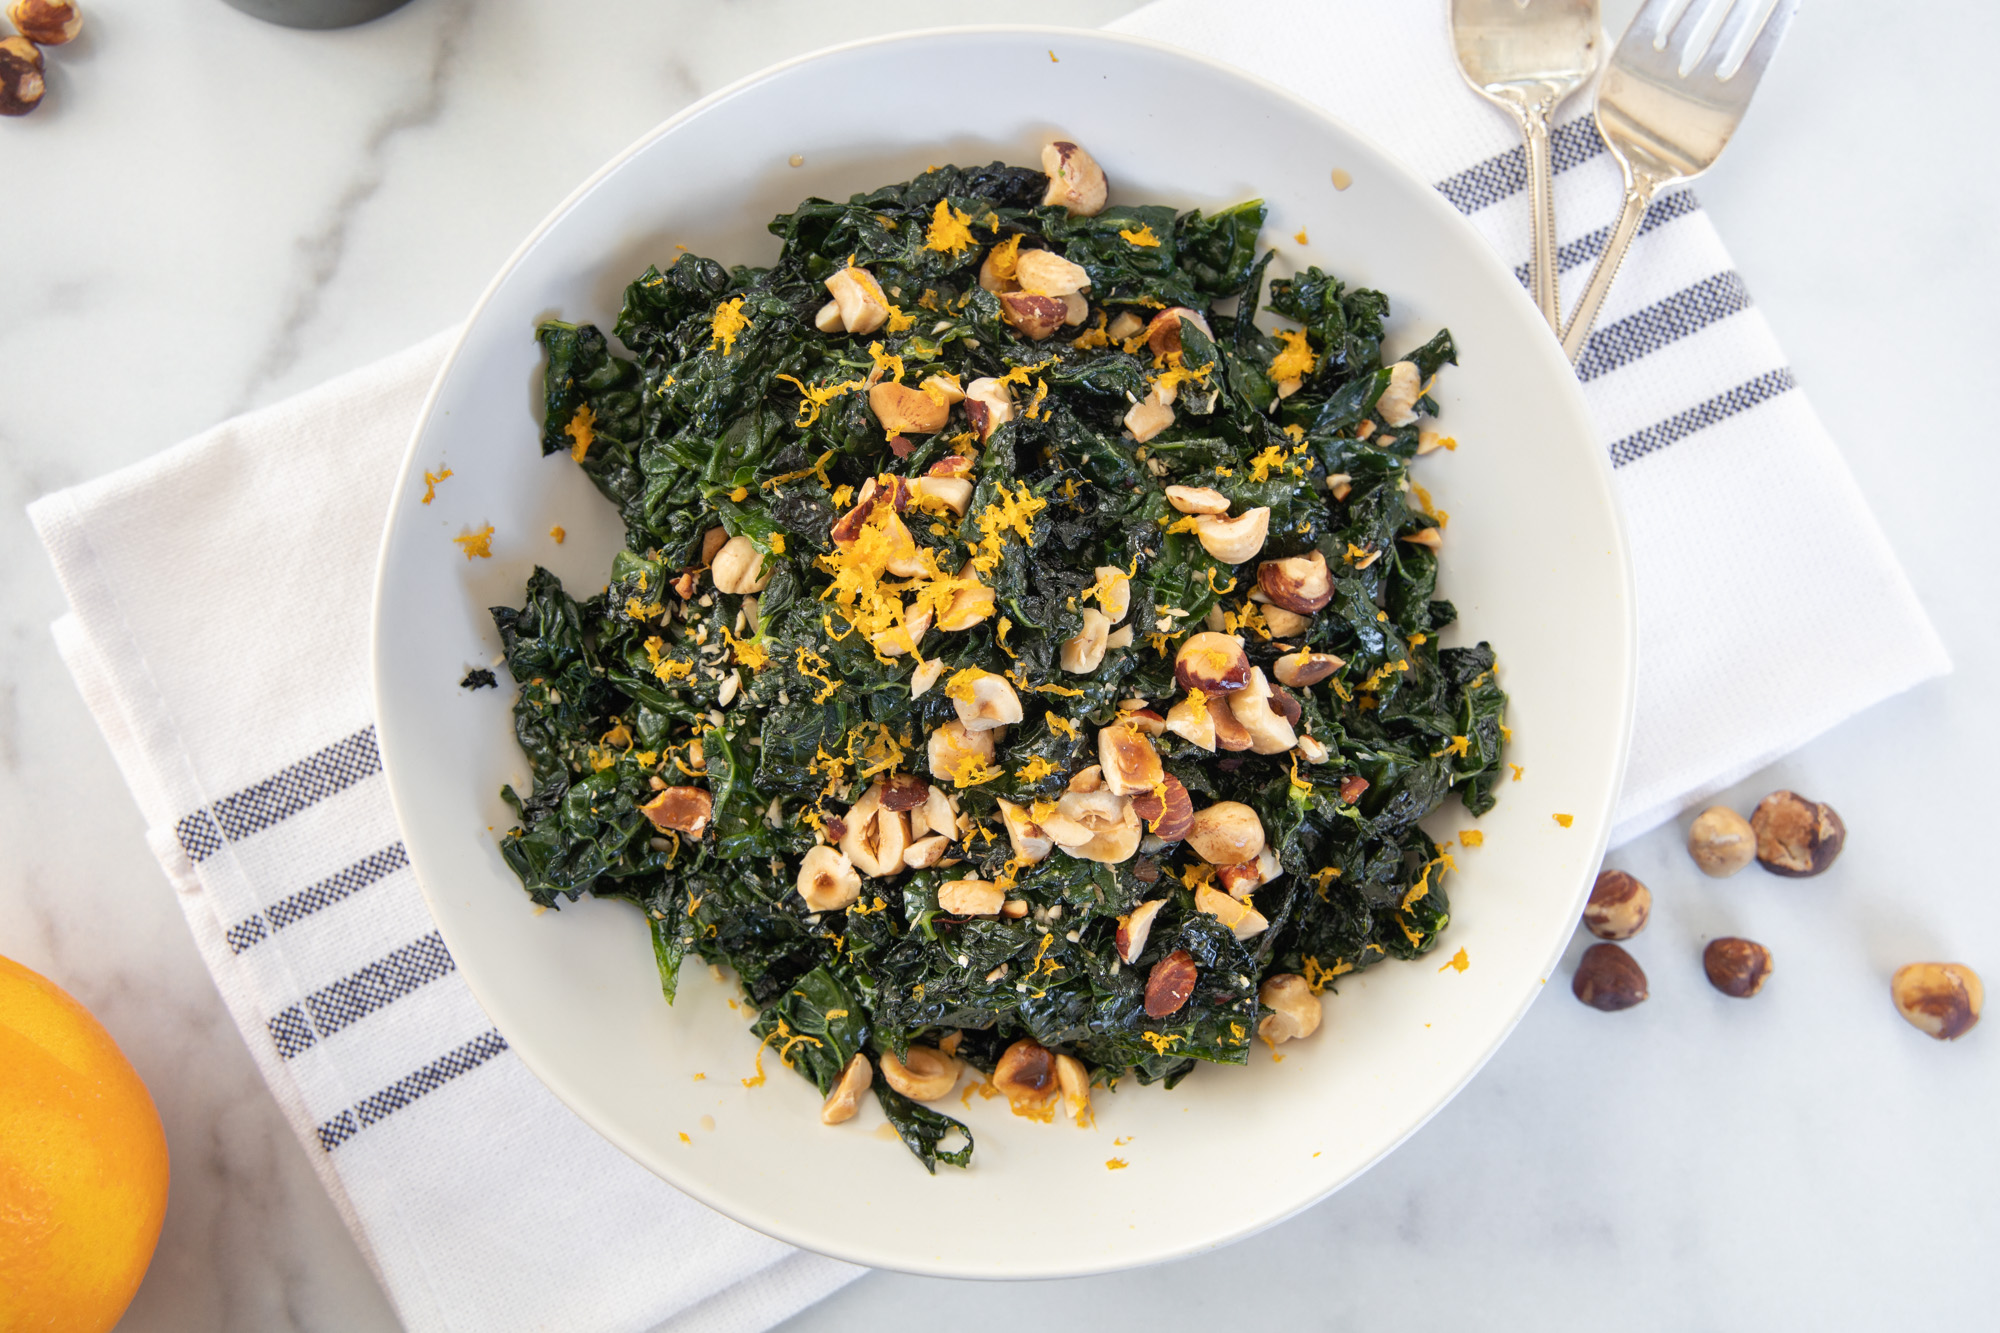 Kale with Hazelnuts and Orange Zest